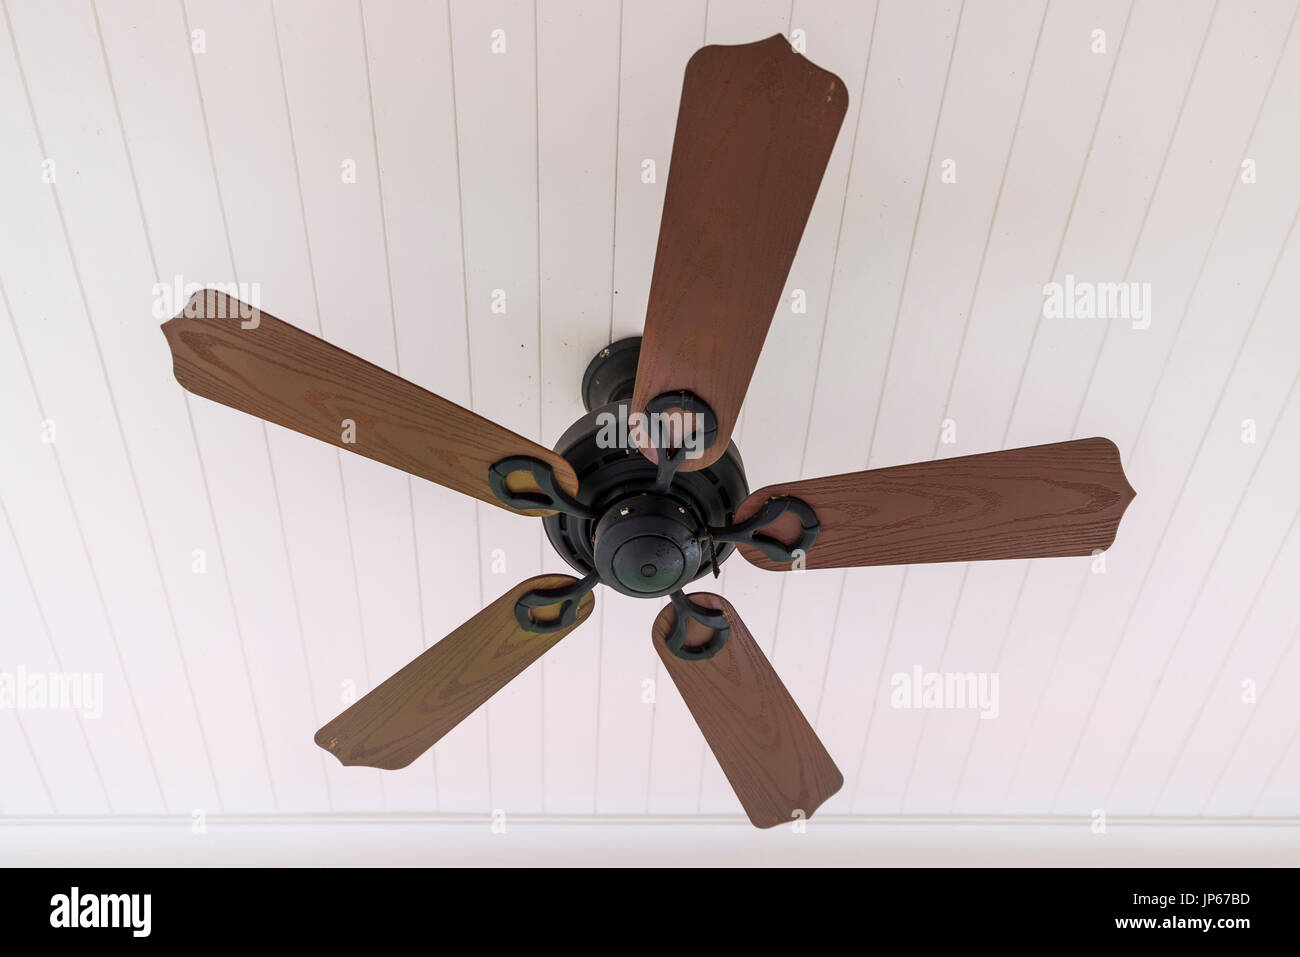 Vintage Wooden Fan Hang On Ceiling Stock Image